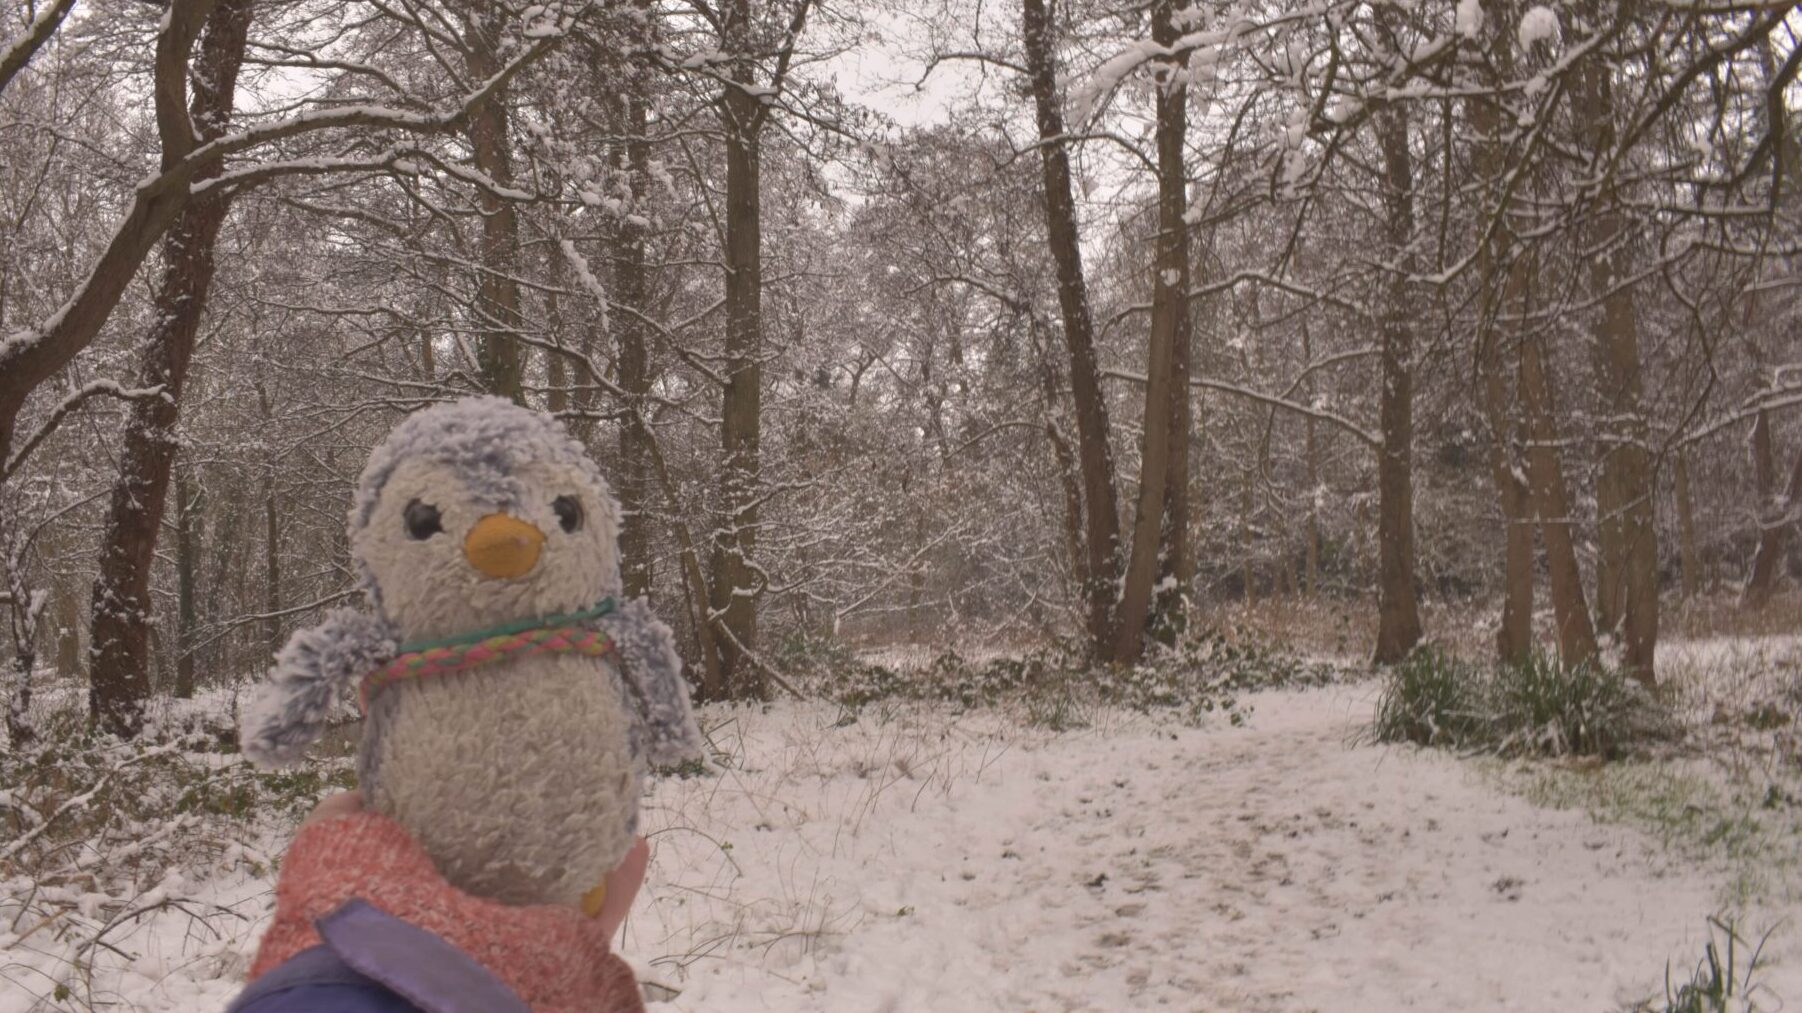 Arnold in a snowy forest